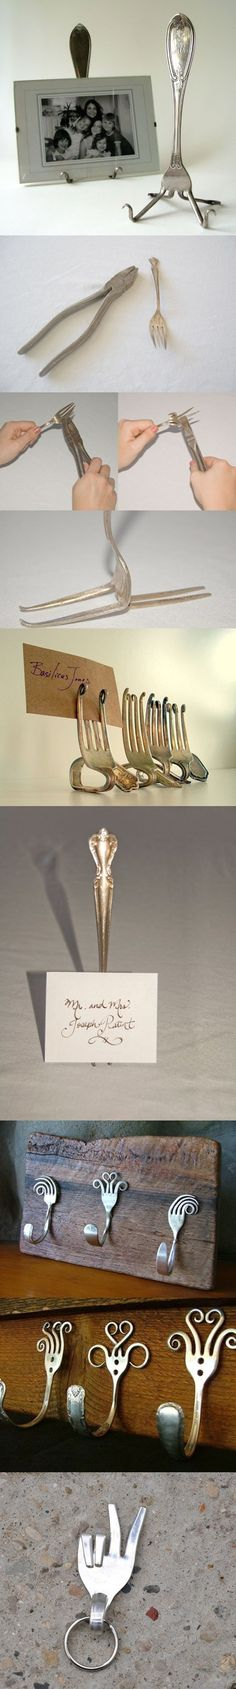 Fork Art - how cool is this?!?